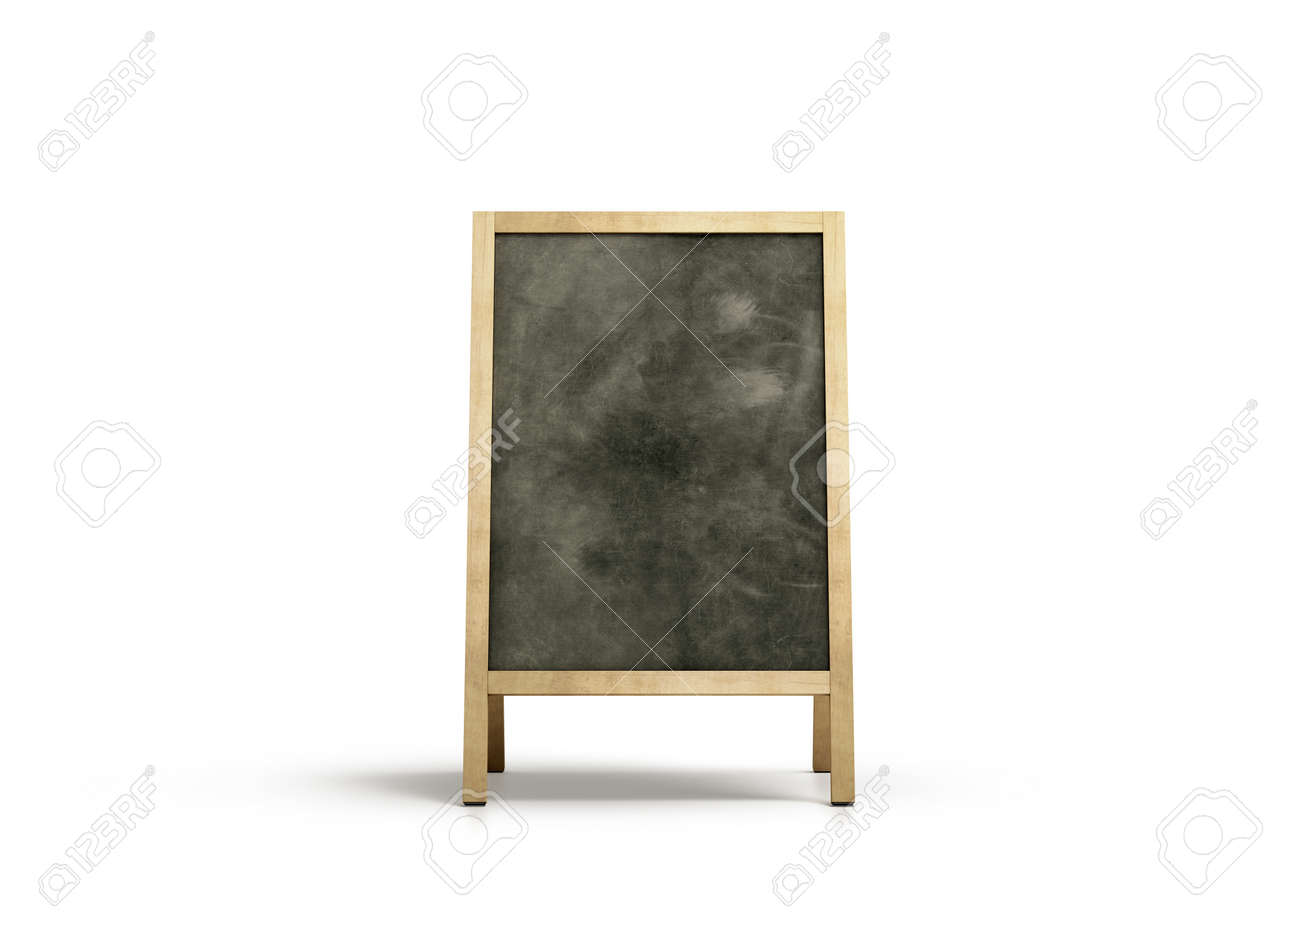 Wonderful Blank Outdoor Chalkboard Stand Mockup, Isolated, Front View  OF35